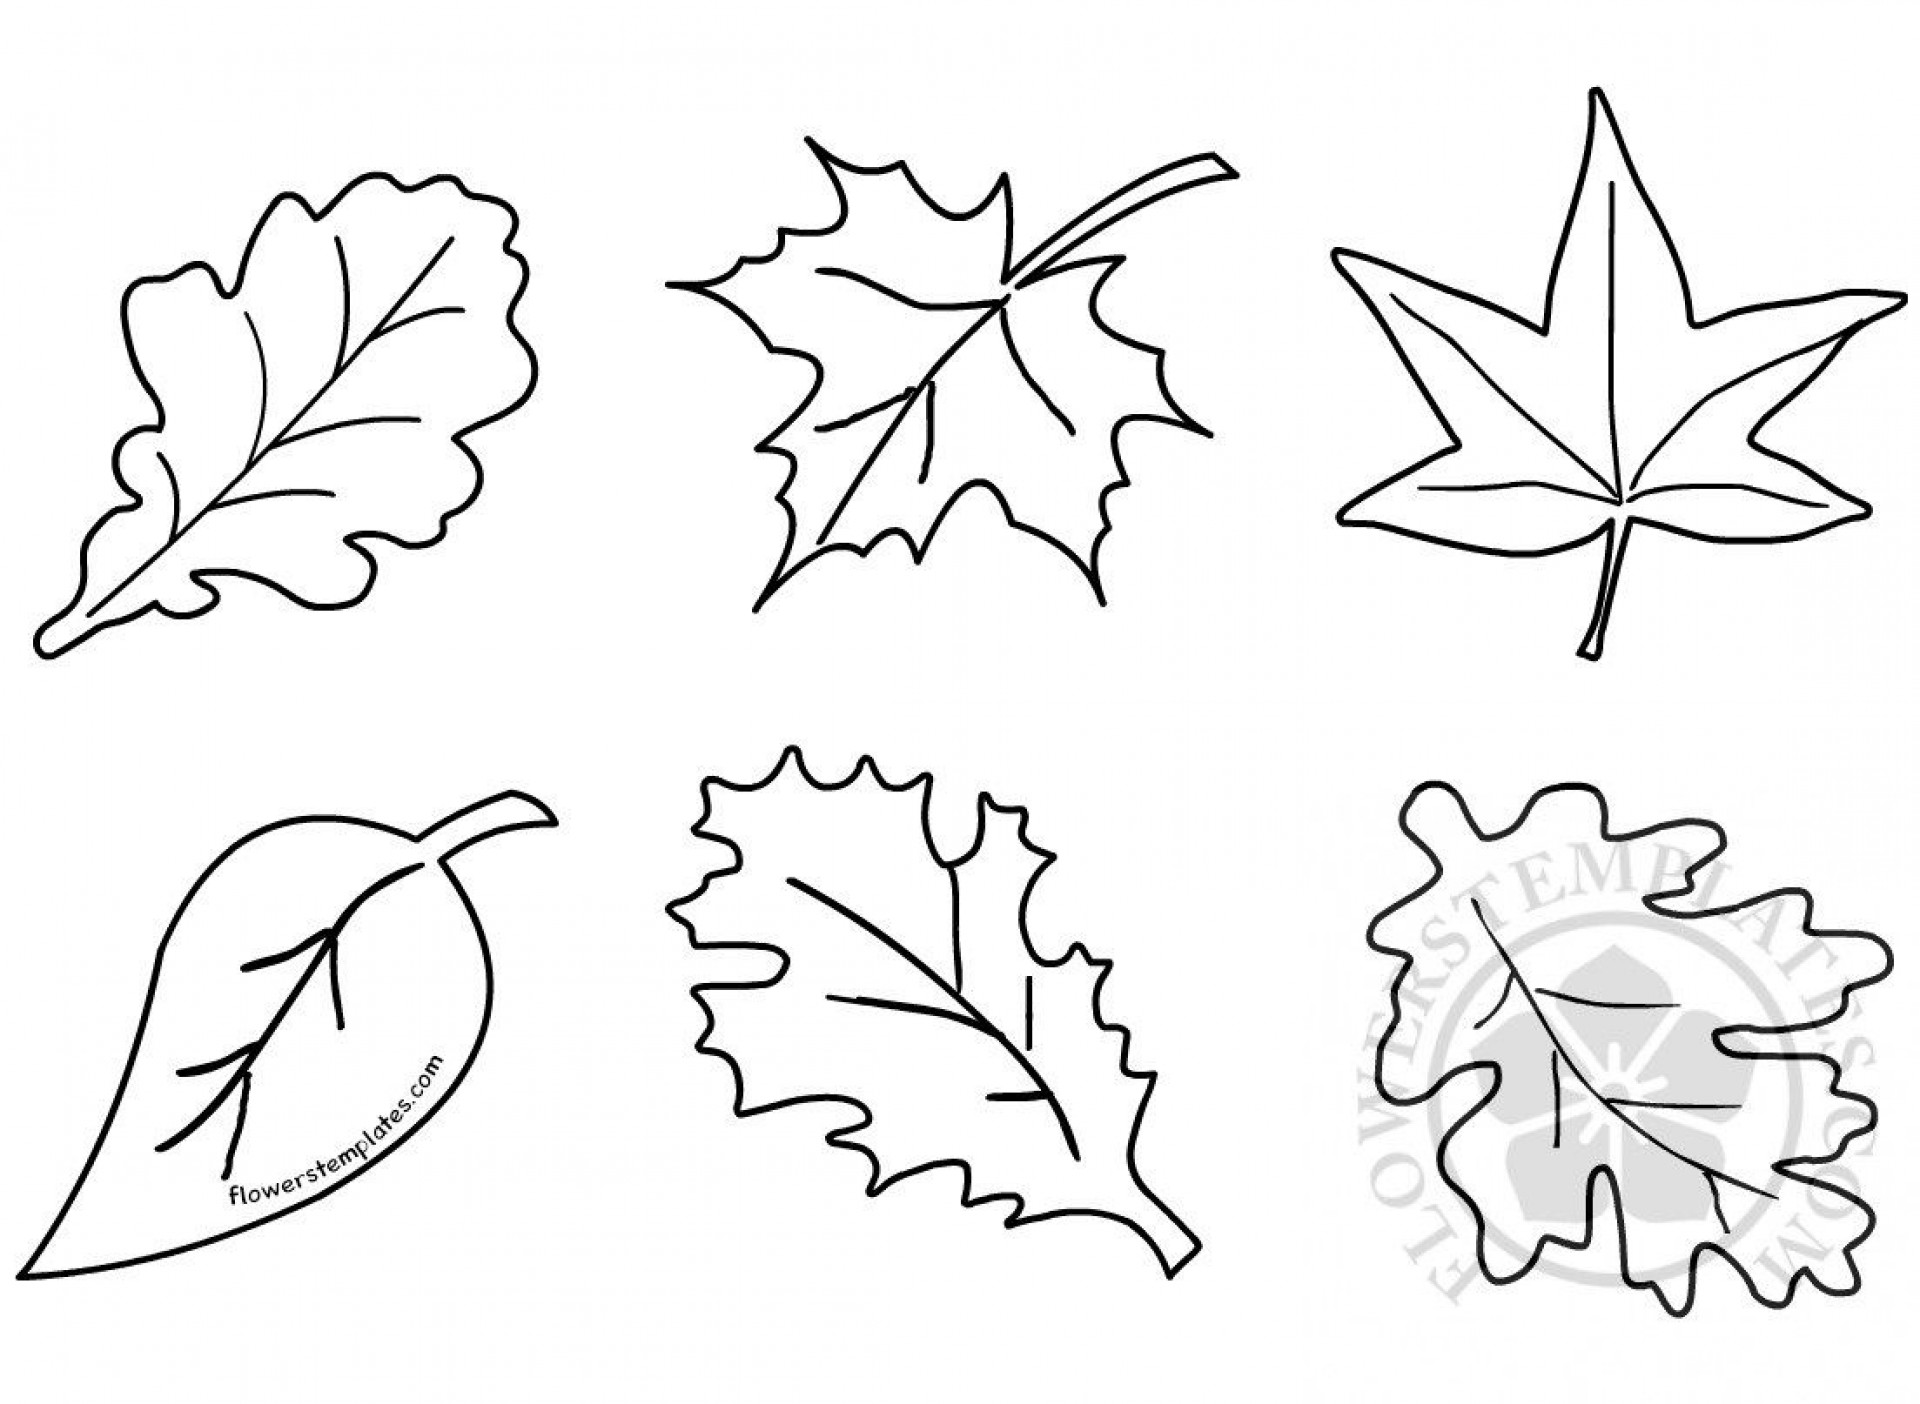 011 Formidable Blank Leaf Template With Line Idea  Lines Printable1920